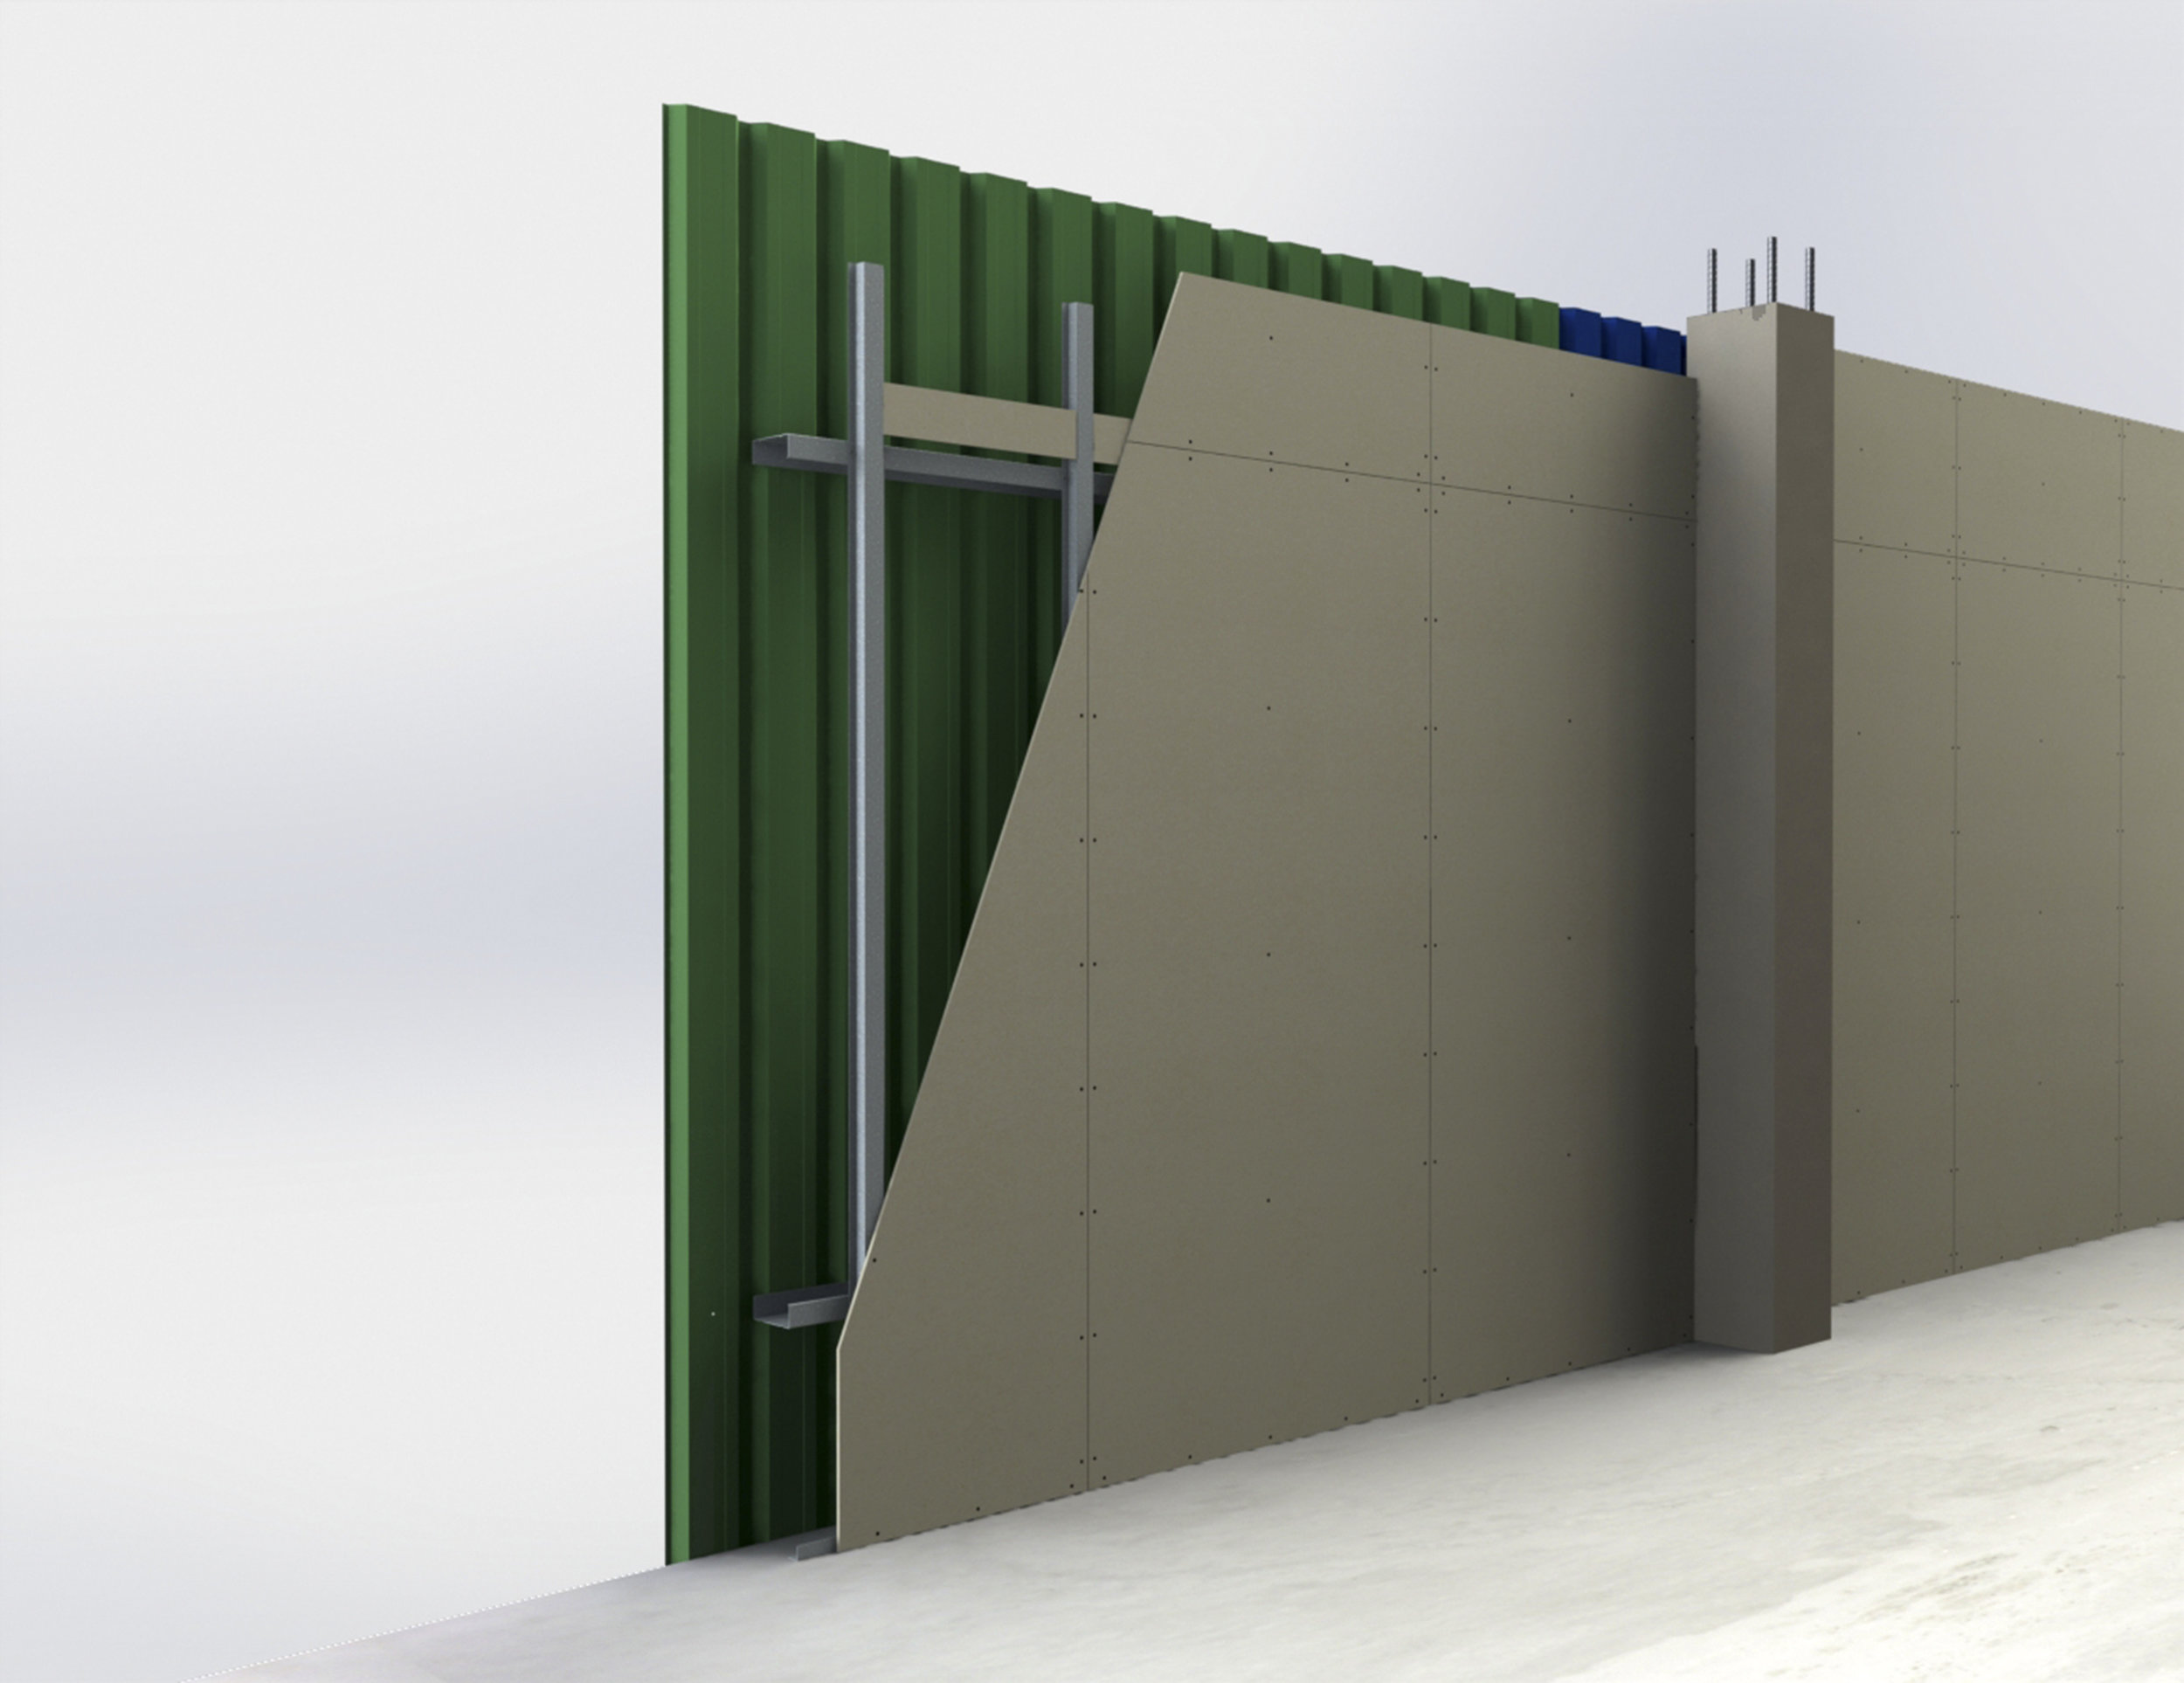 External walls with steel cladding